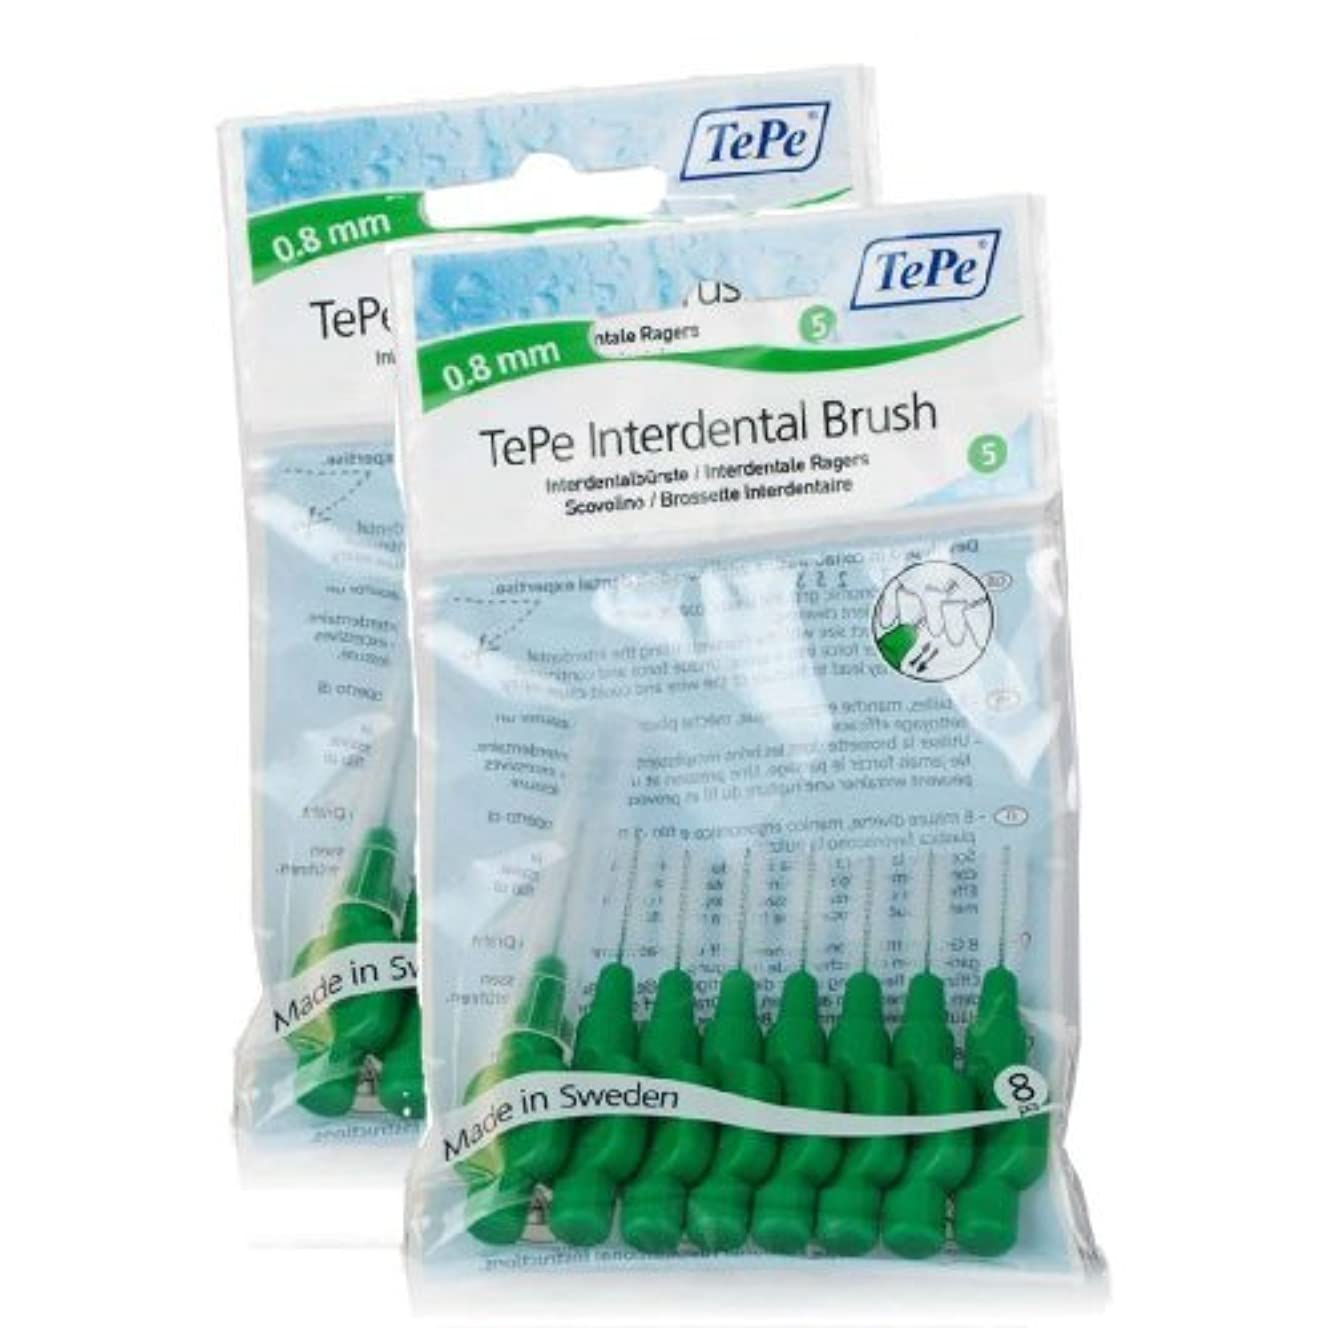 静的焼く重荷TEPE Interdental Brushes 0.8mm - 2 Packets of 8 (16 Brushes) Green by TePe [並行輸入品]